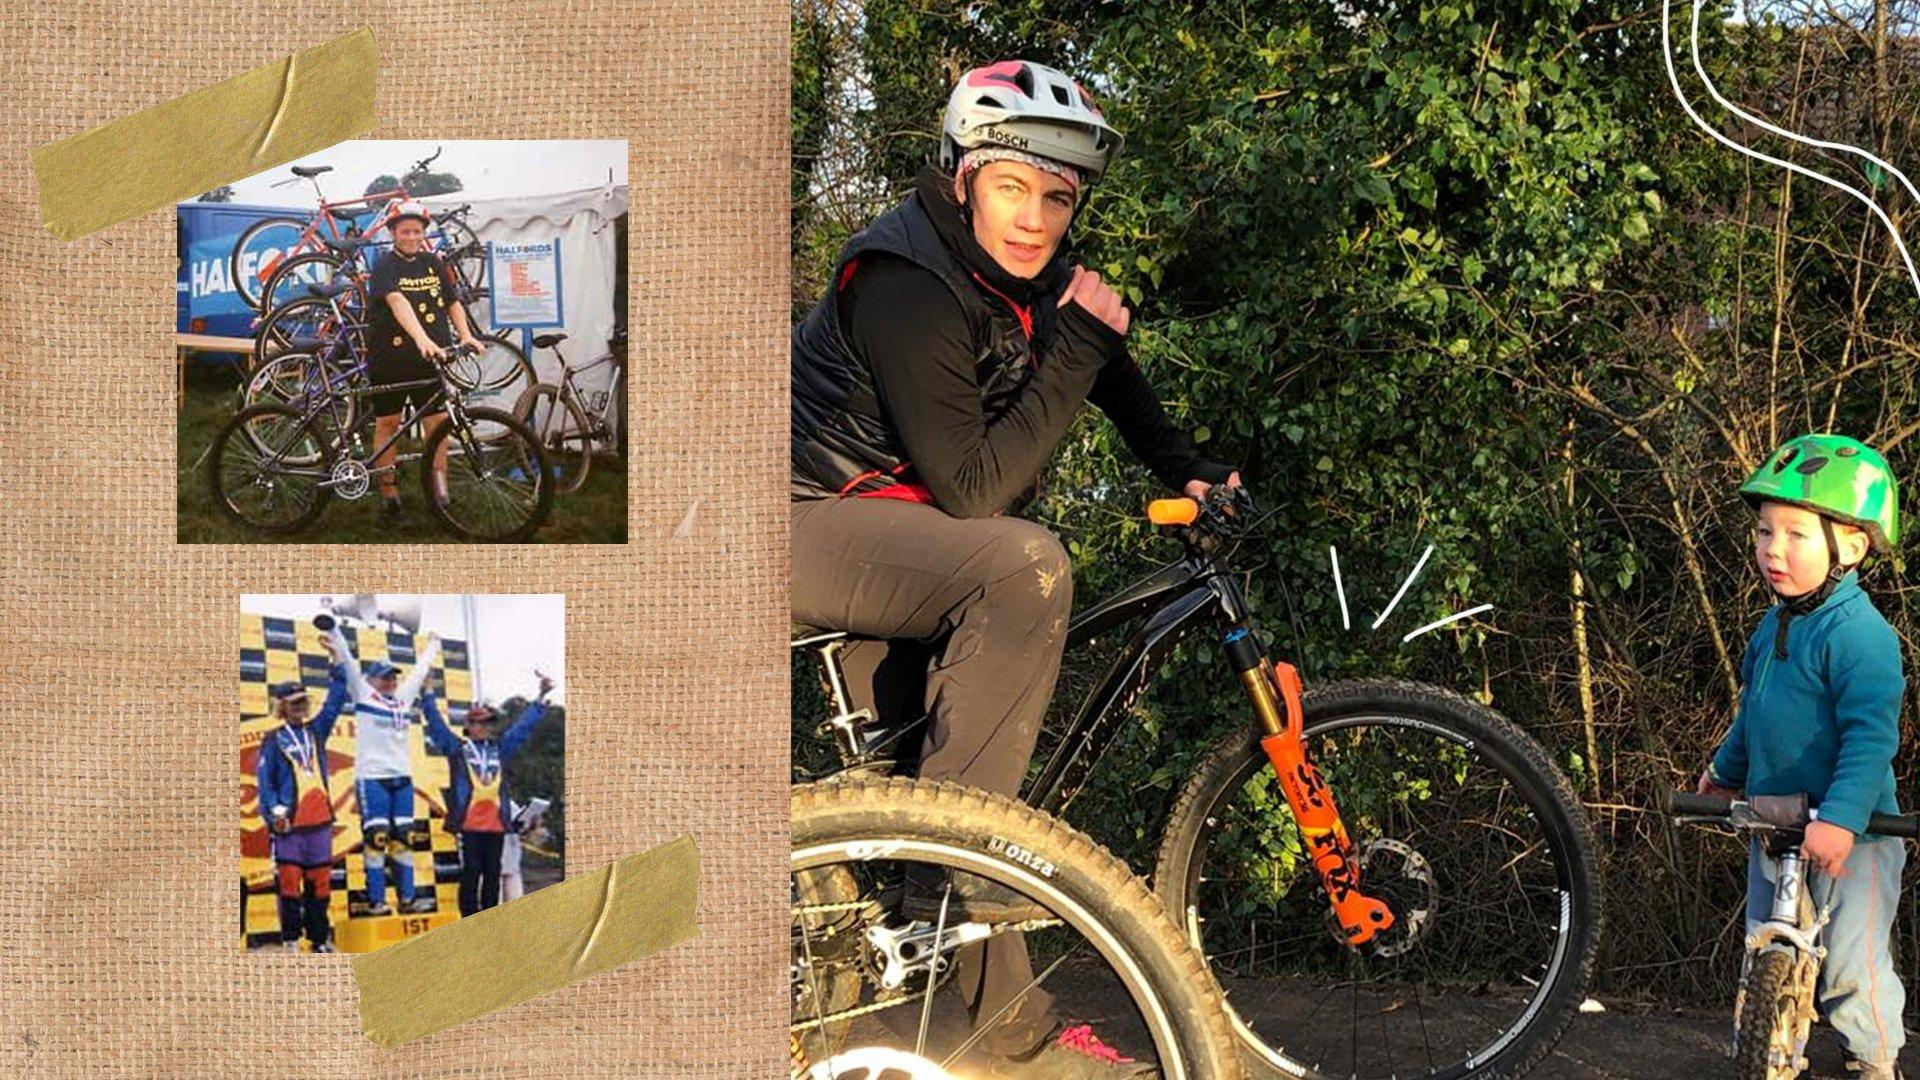 Older images of Tracy competing in mountain biking events next to an image of her and Toby on their bikes